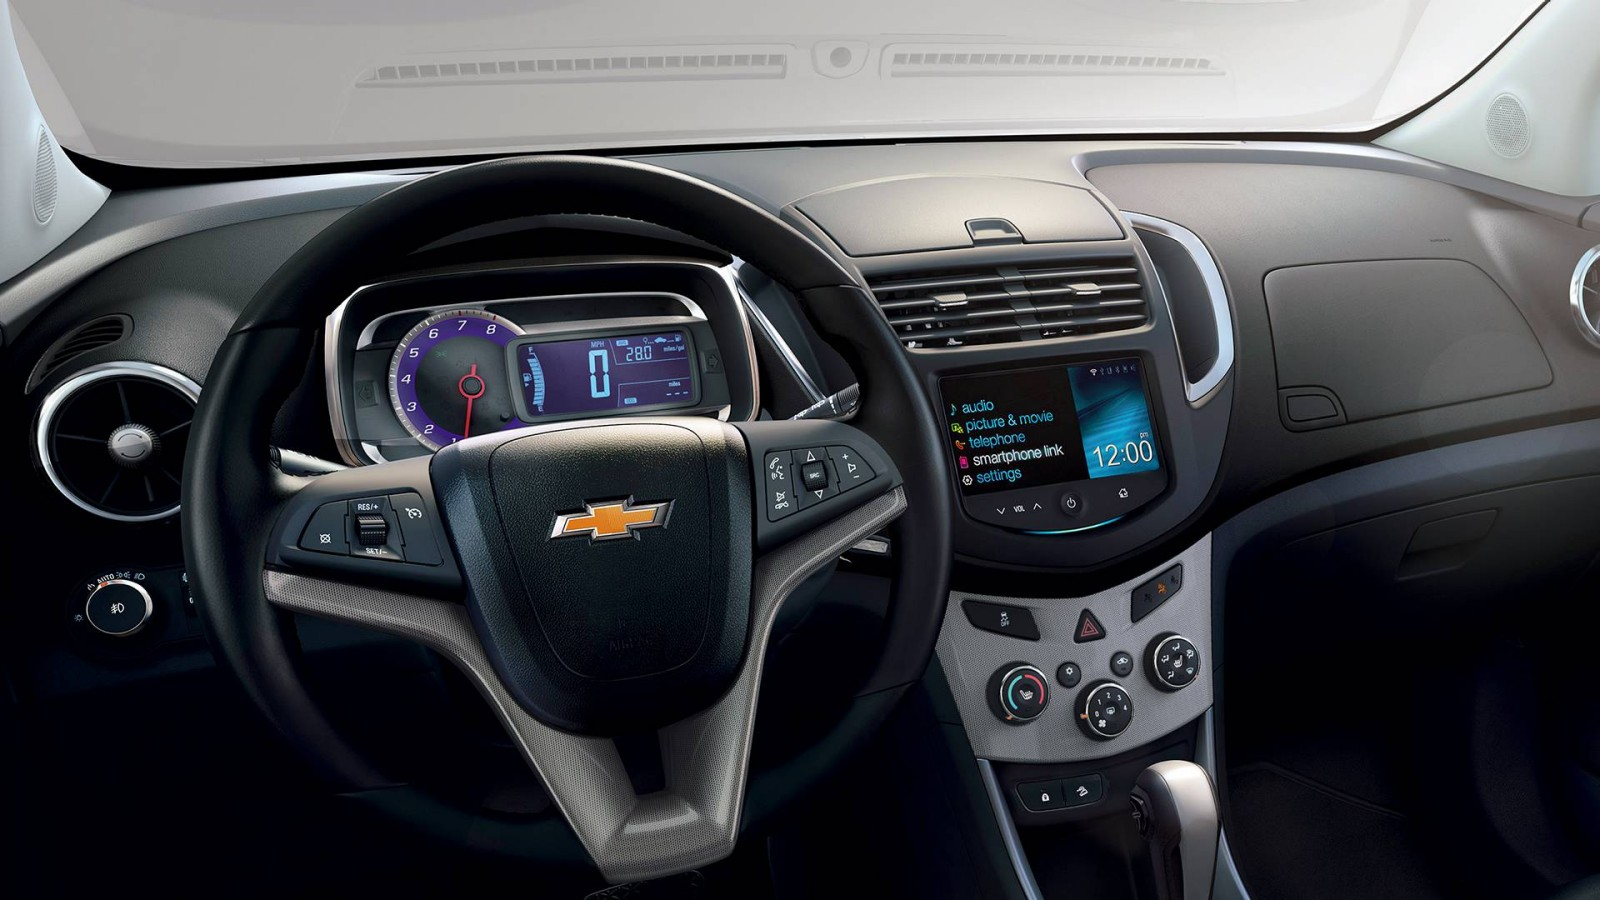 2016 Chevy Trax interior features